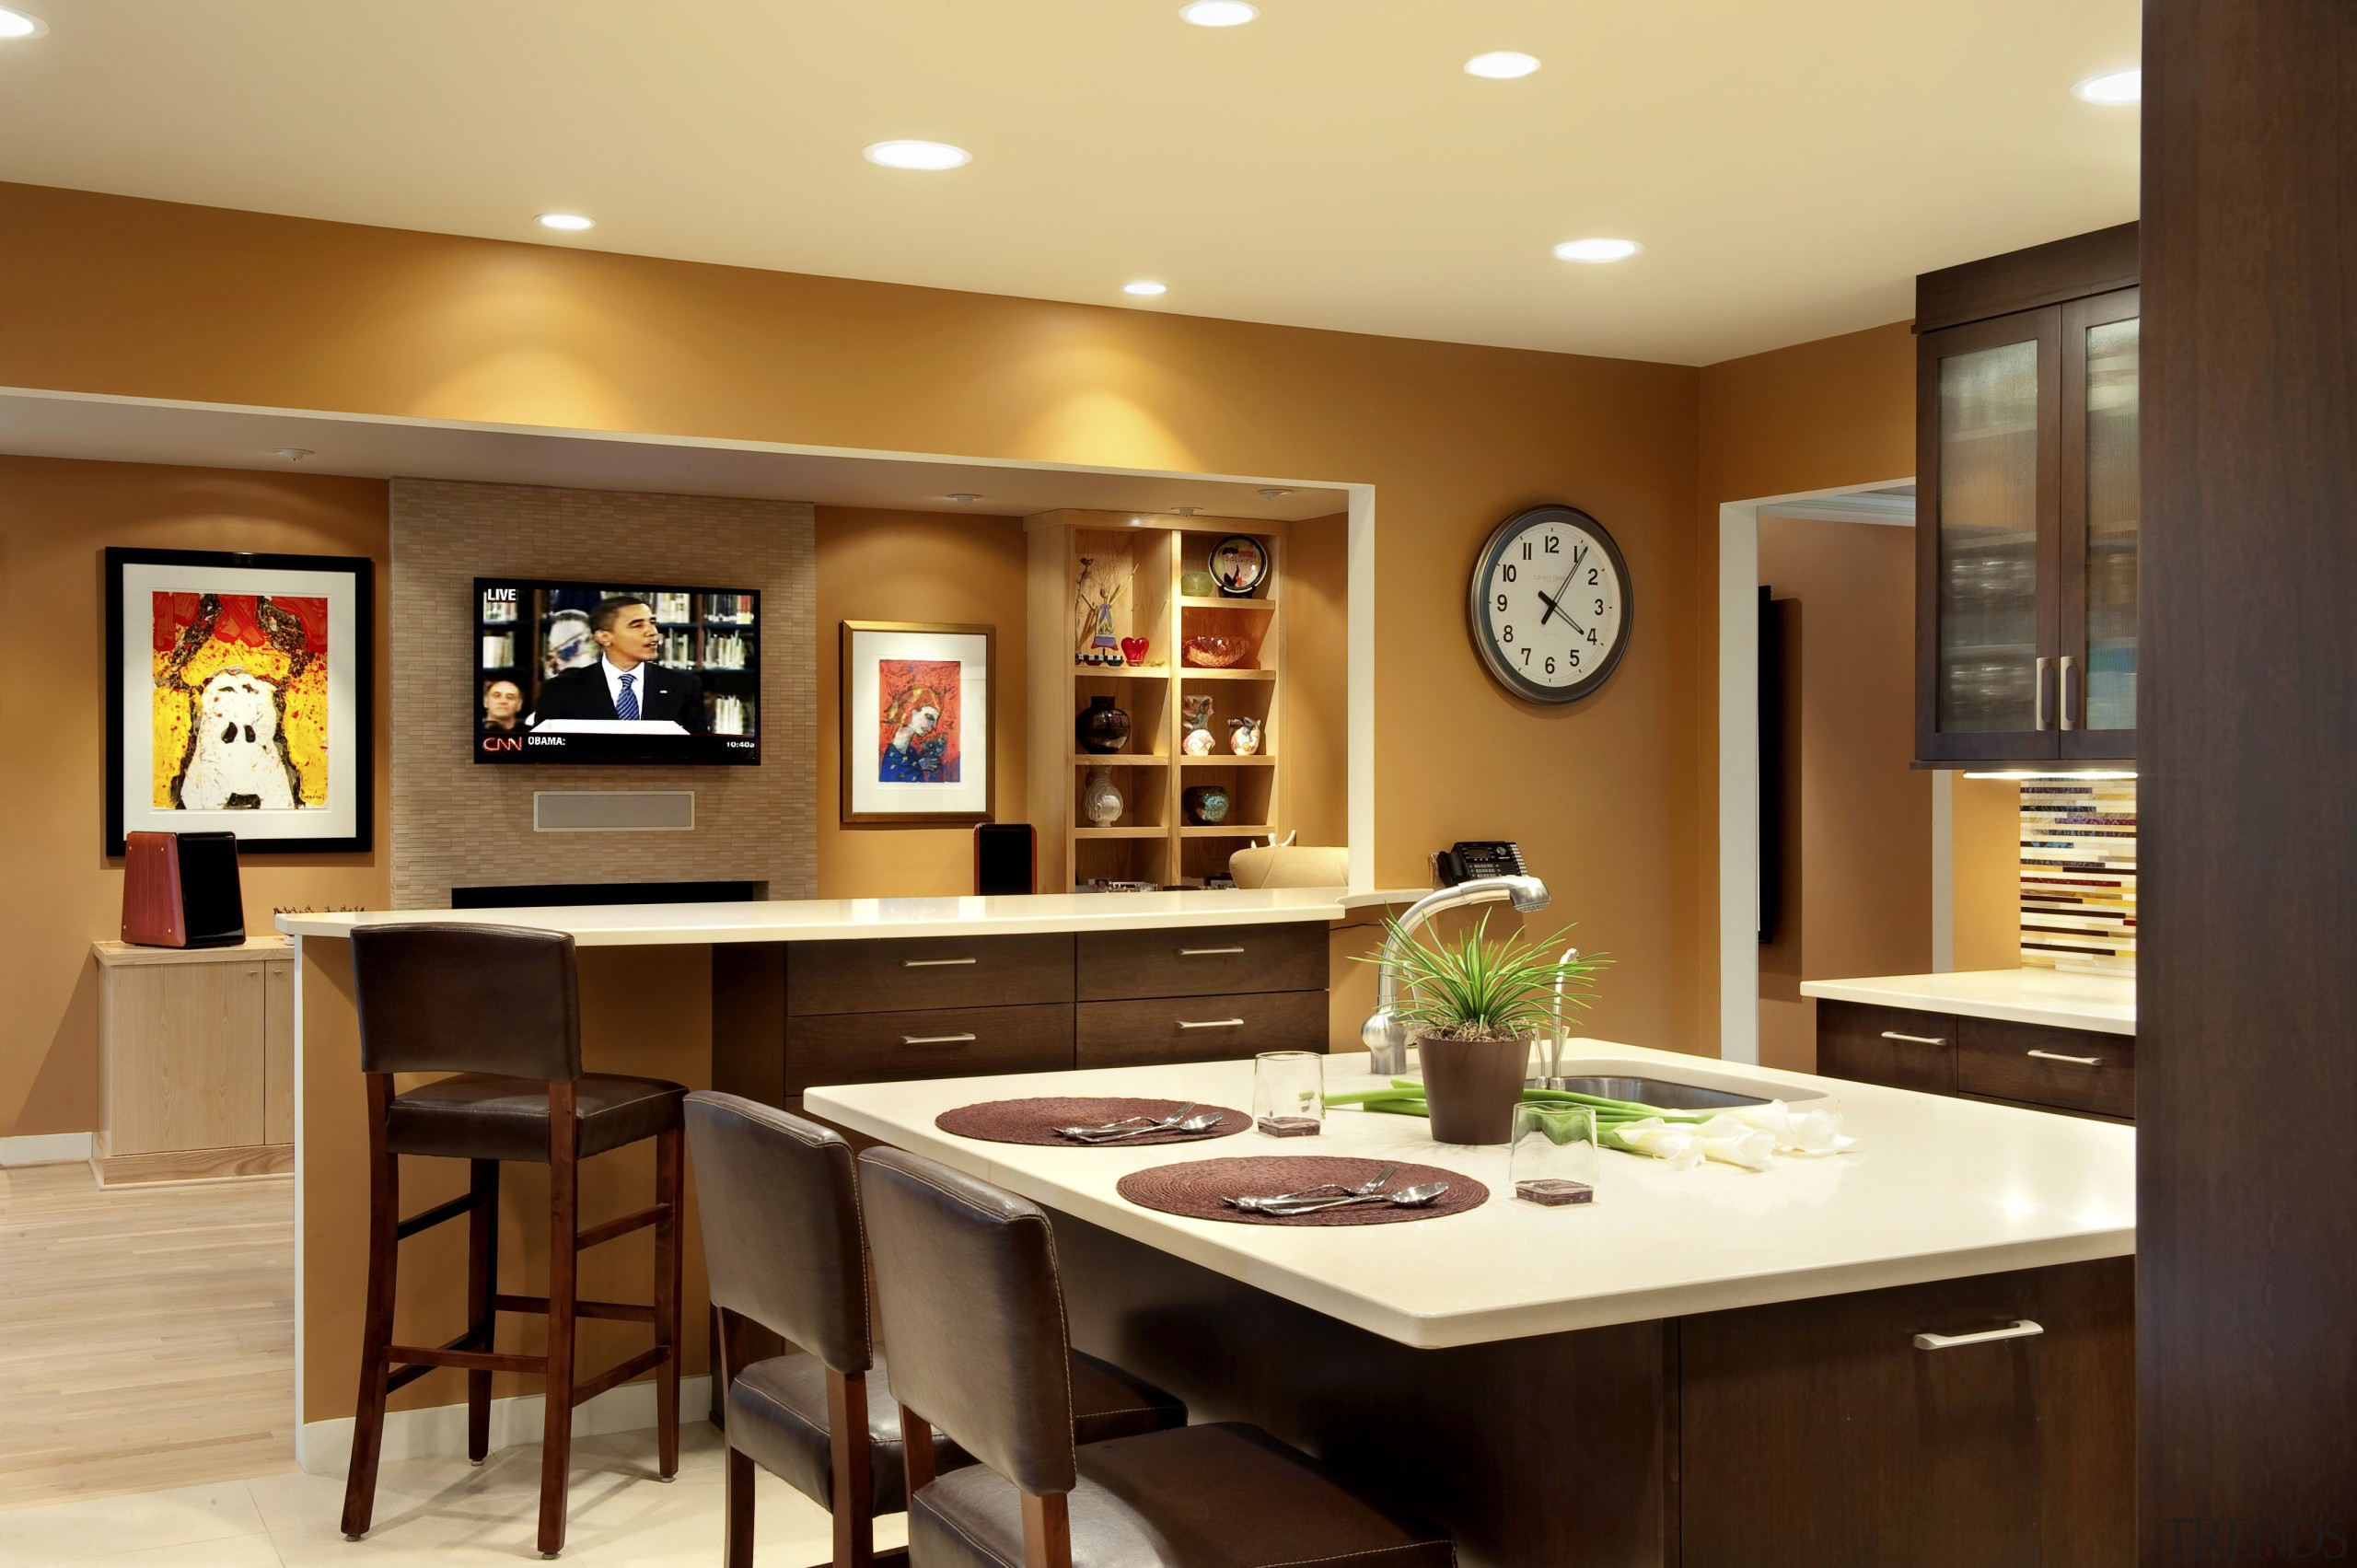 Prior to the remodel of this kitchen, a countertop, dining room, interior design, kitchen, room, table, brown, orange